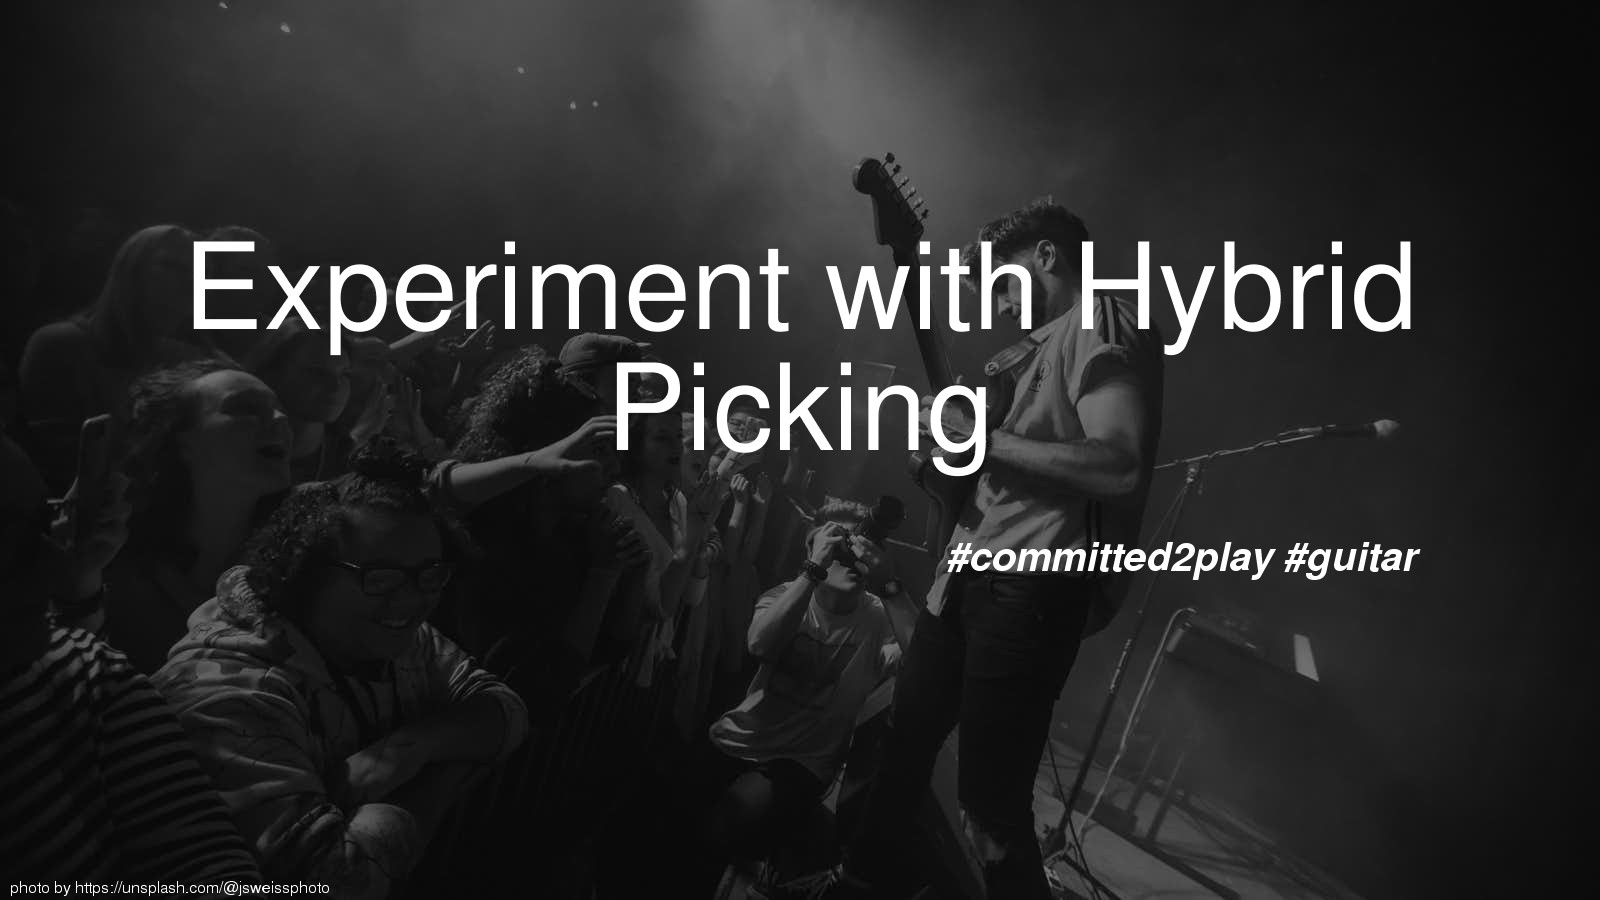 Experiment with Hybrid Picking